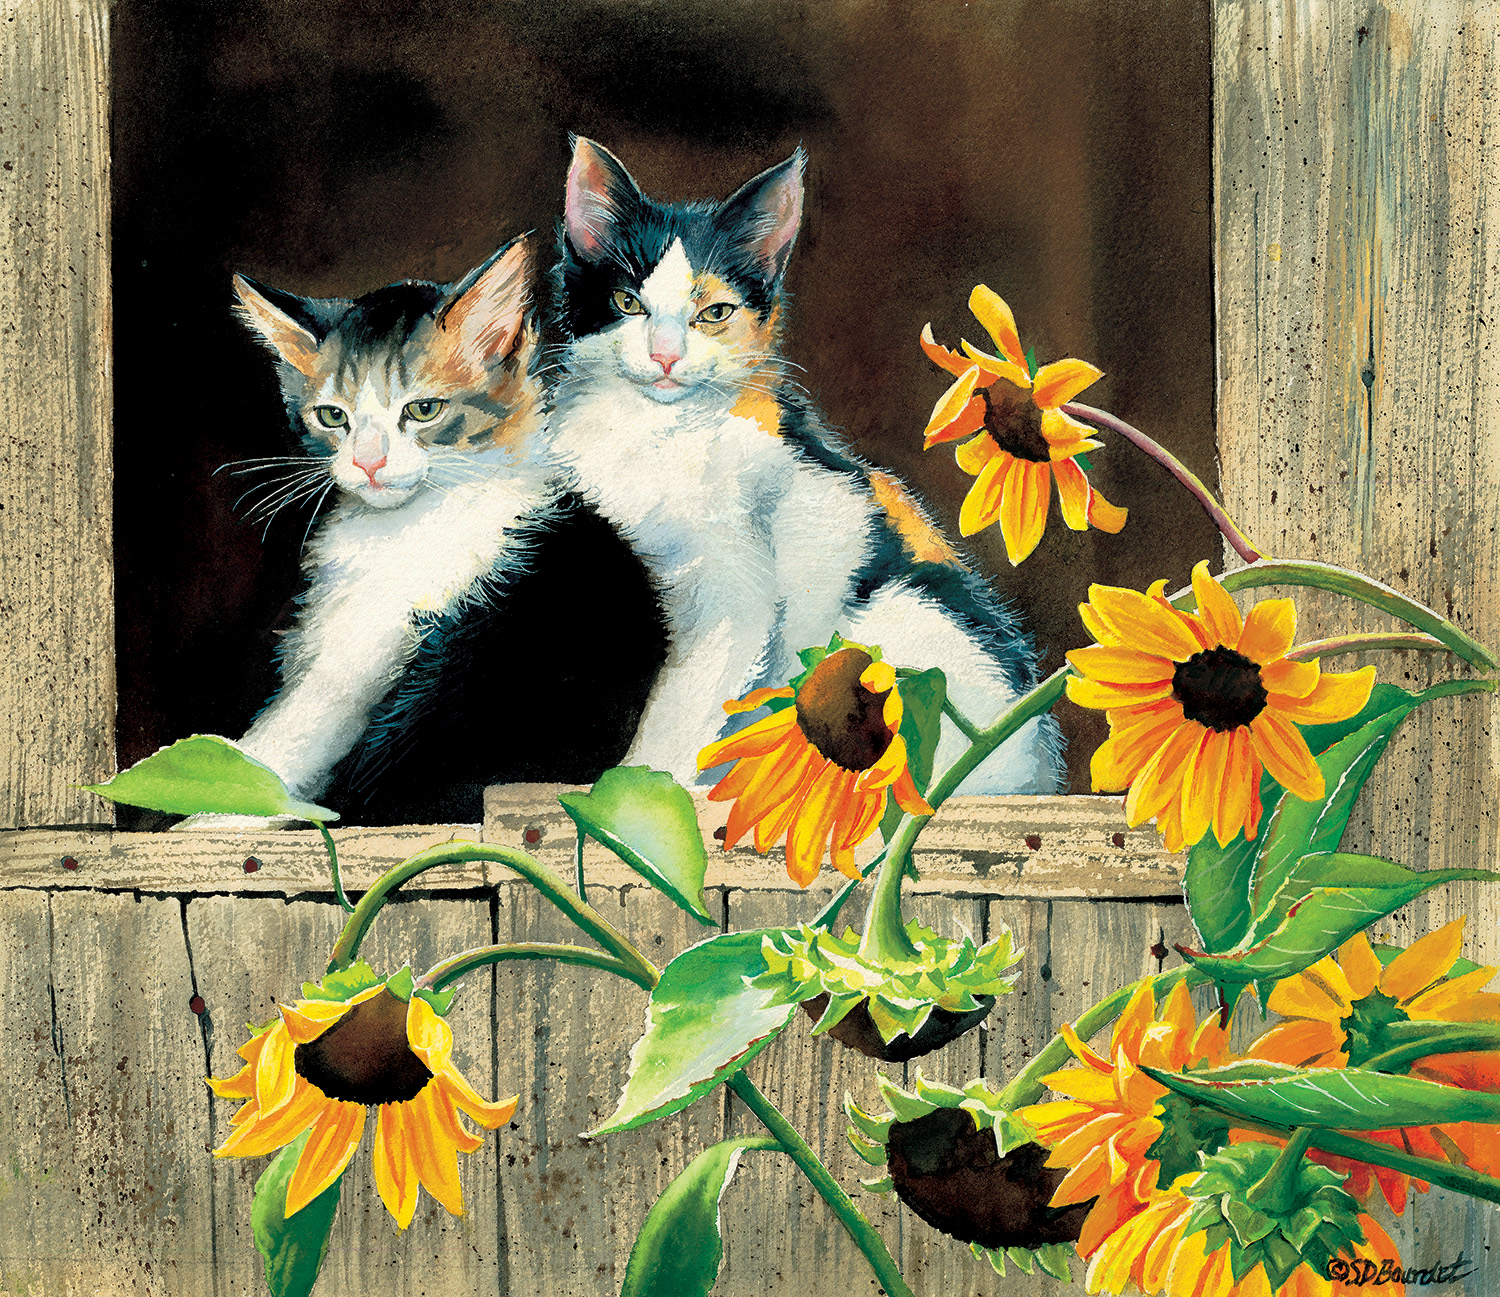 sunsout-susan-bourdet-kittens-and-sunflowers-550-teile-puzzle-sunsout-28975